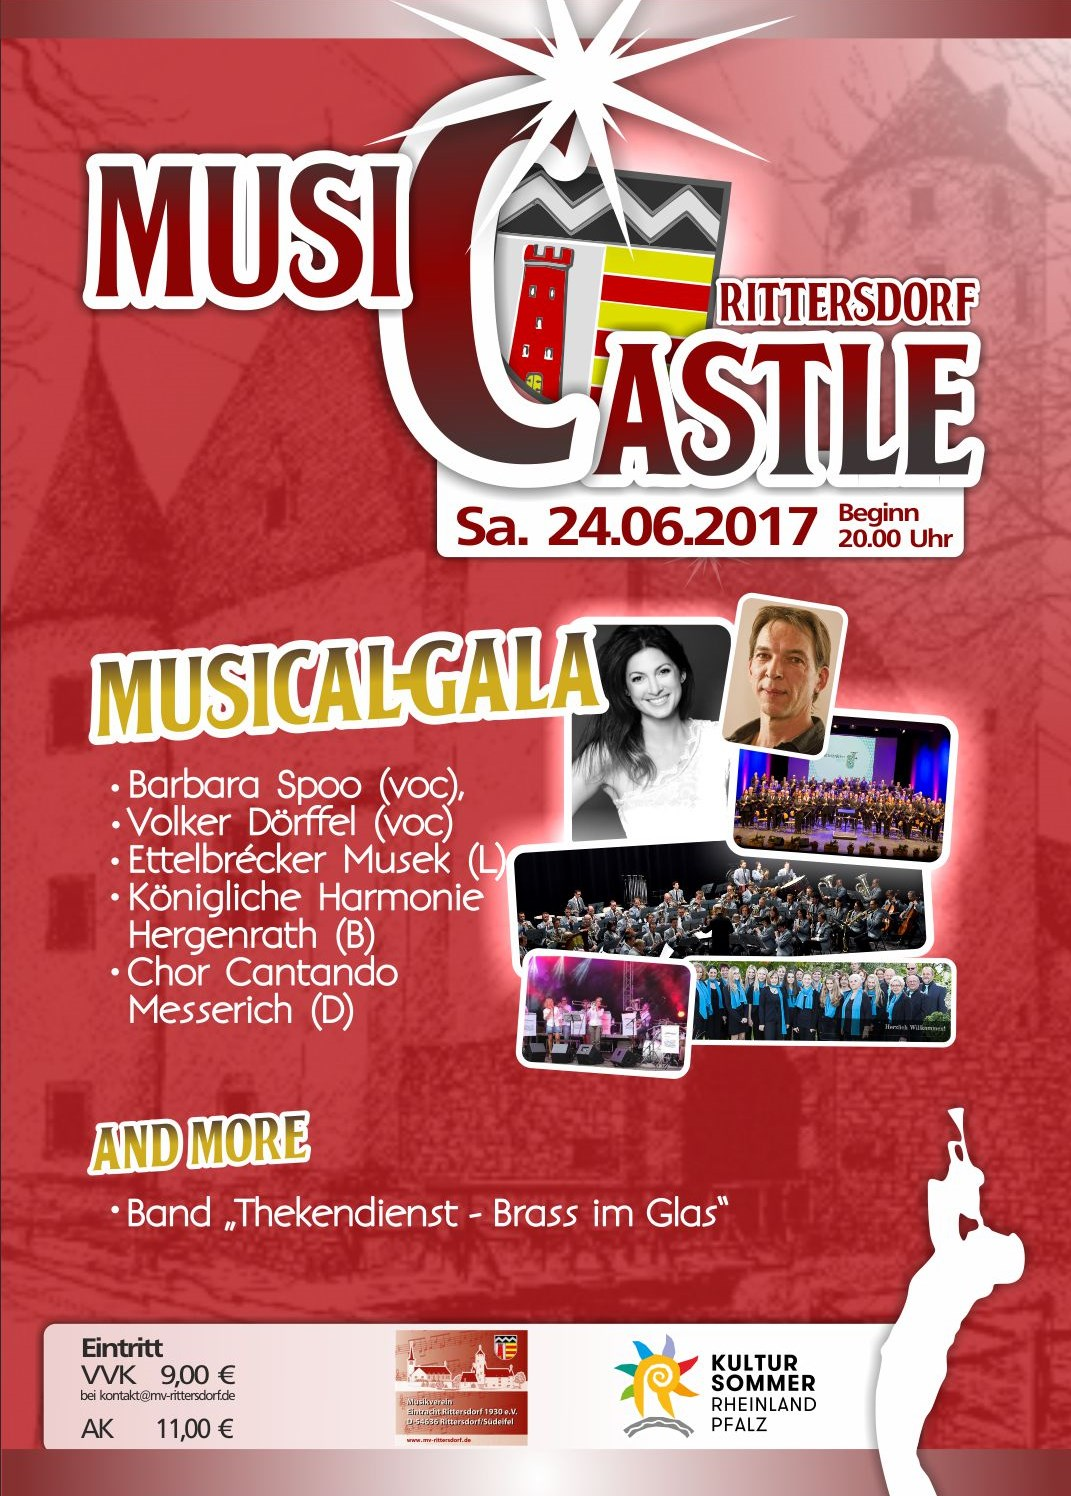 Musicastle Rittersdorf Plakat A3 ohne TD